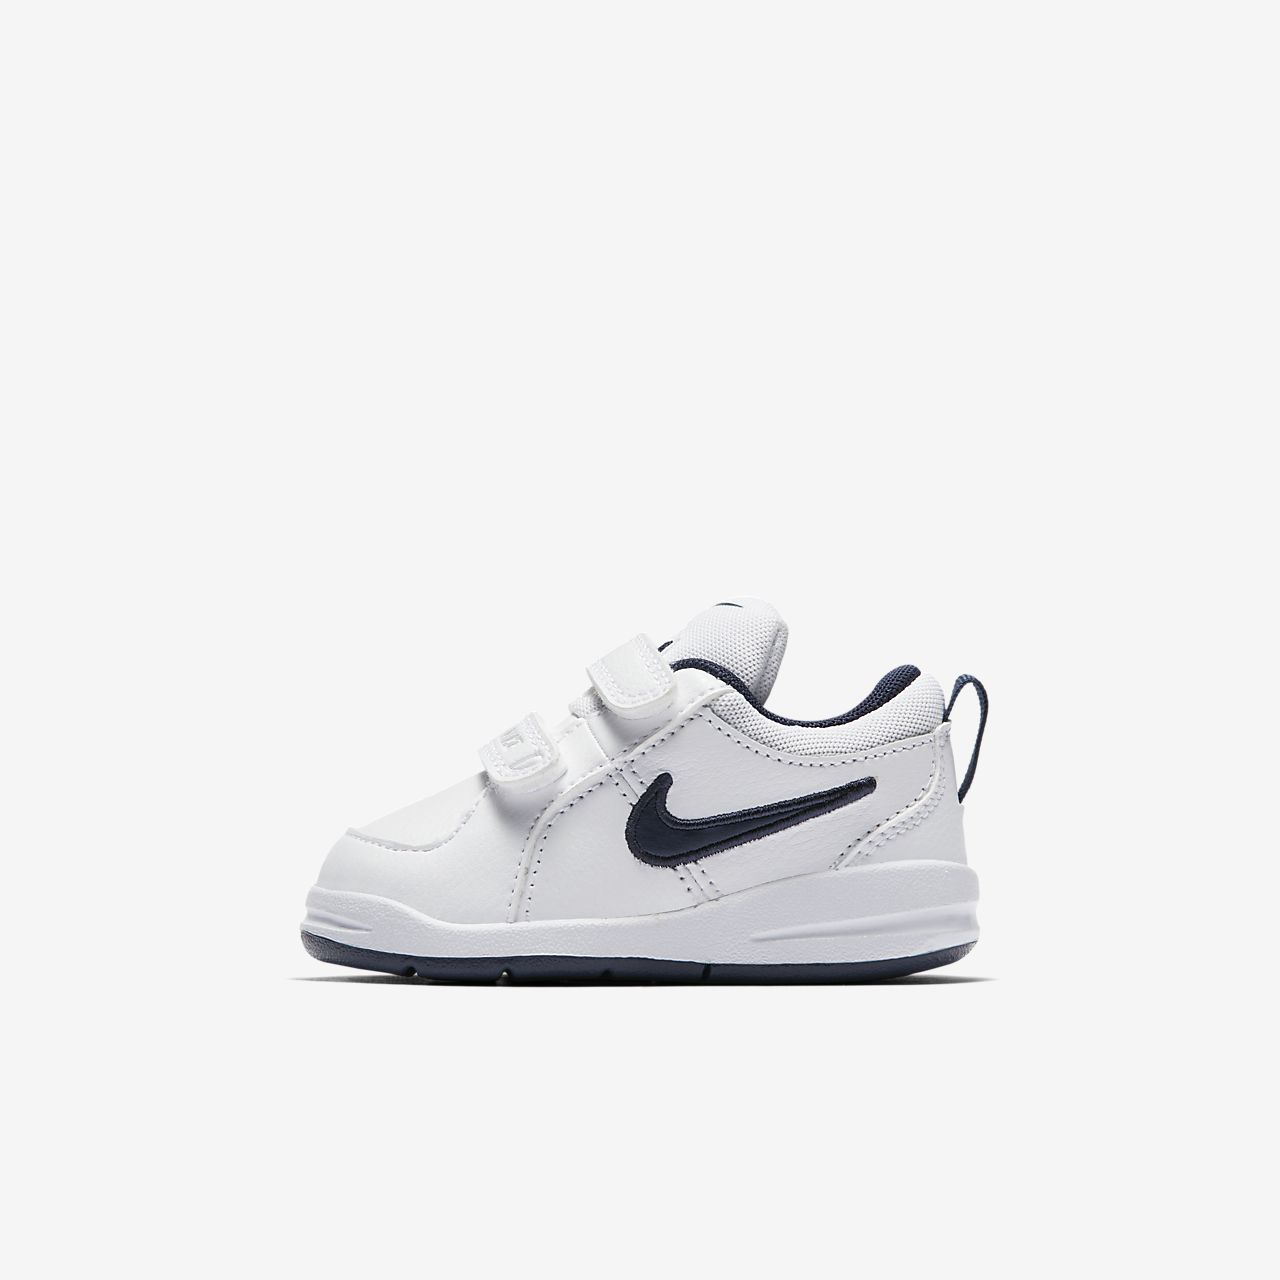 b2dc687e3f7 Nike Pico 4 Baby   Toddler Shoe. Nike.com BE